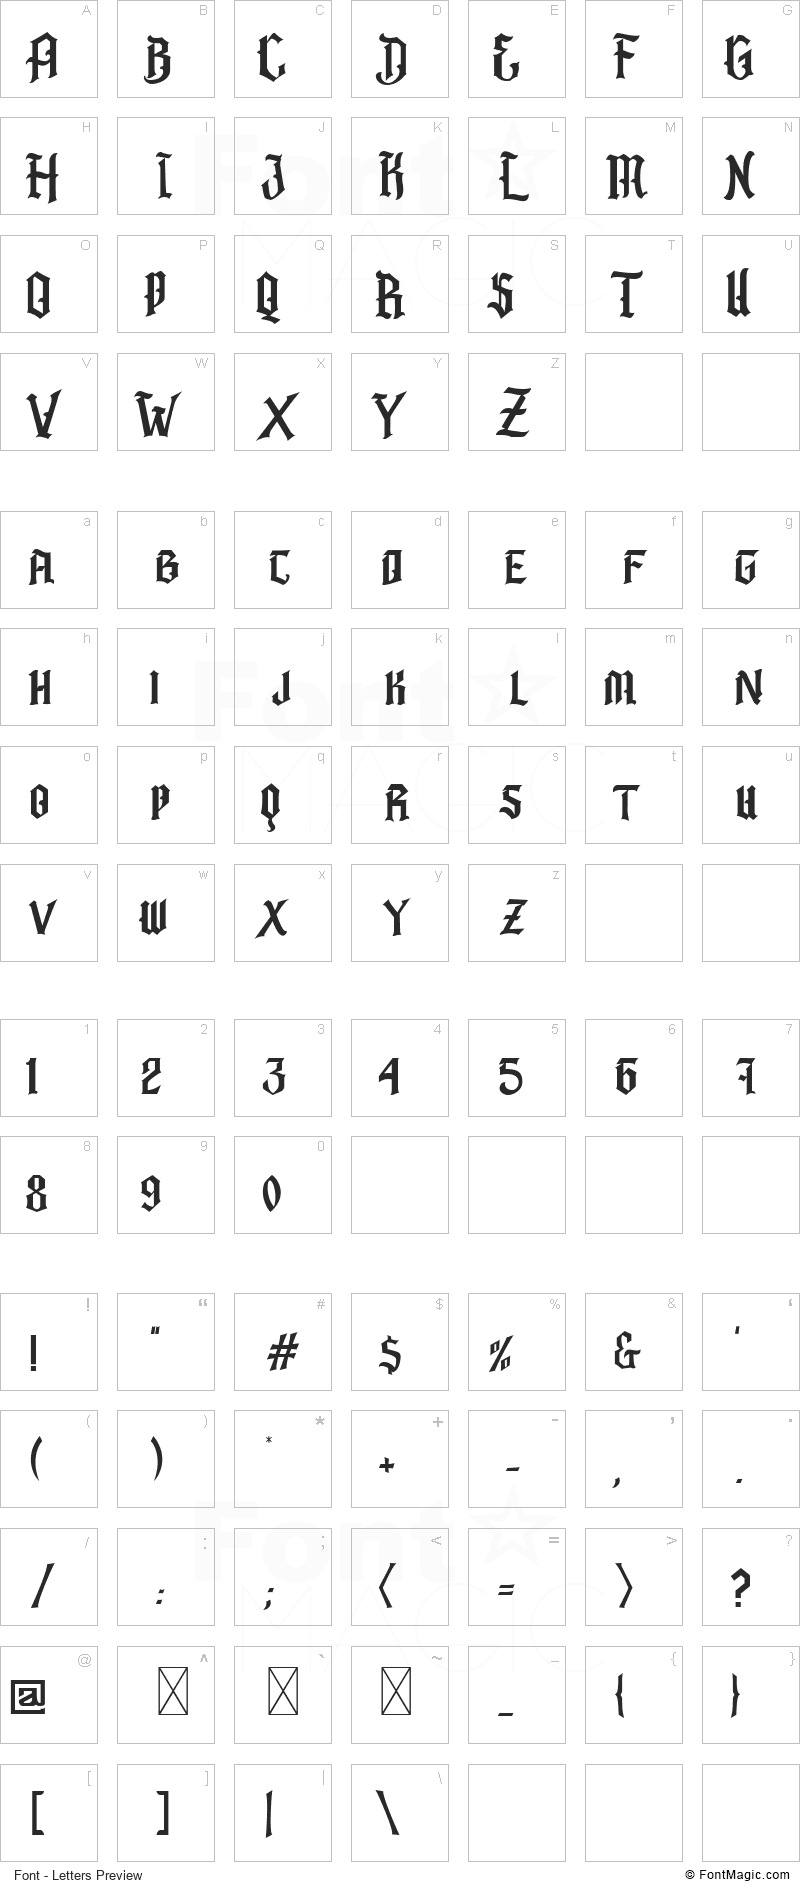 Barbatos Font - All Latters Preview Chart